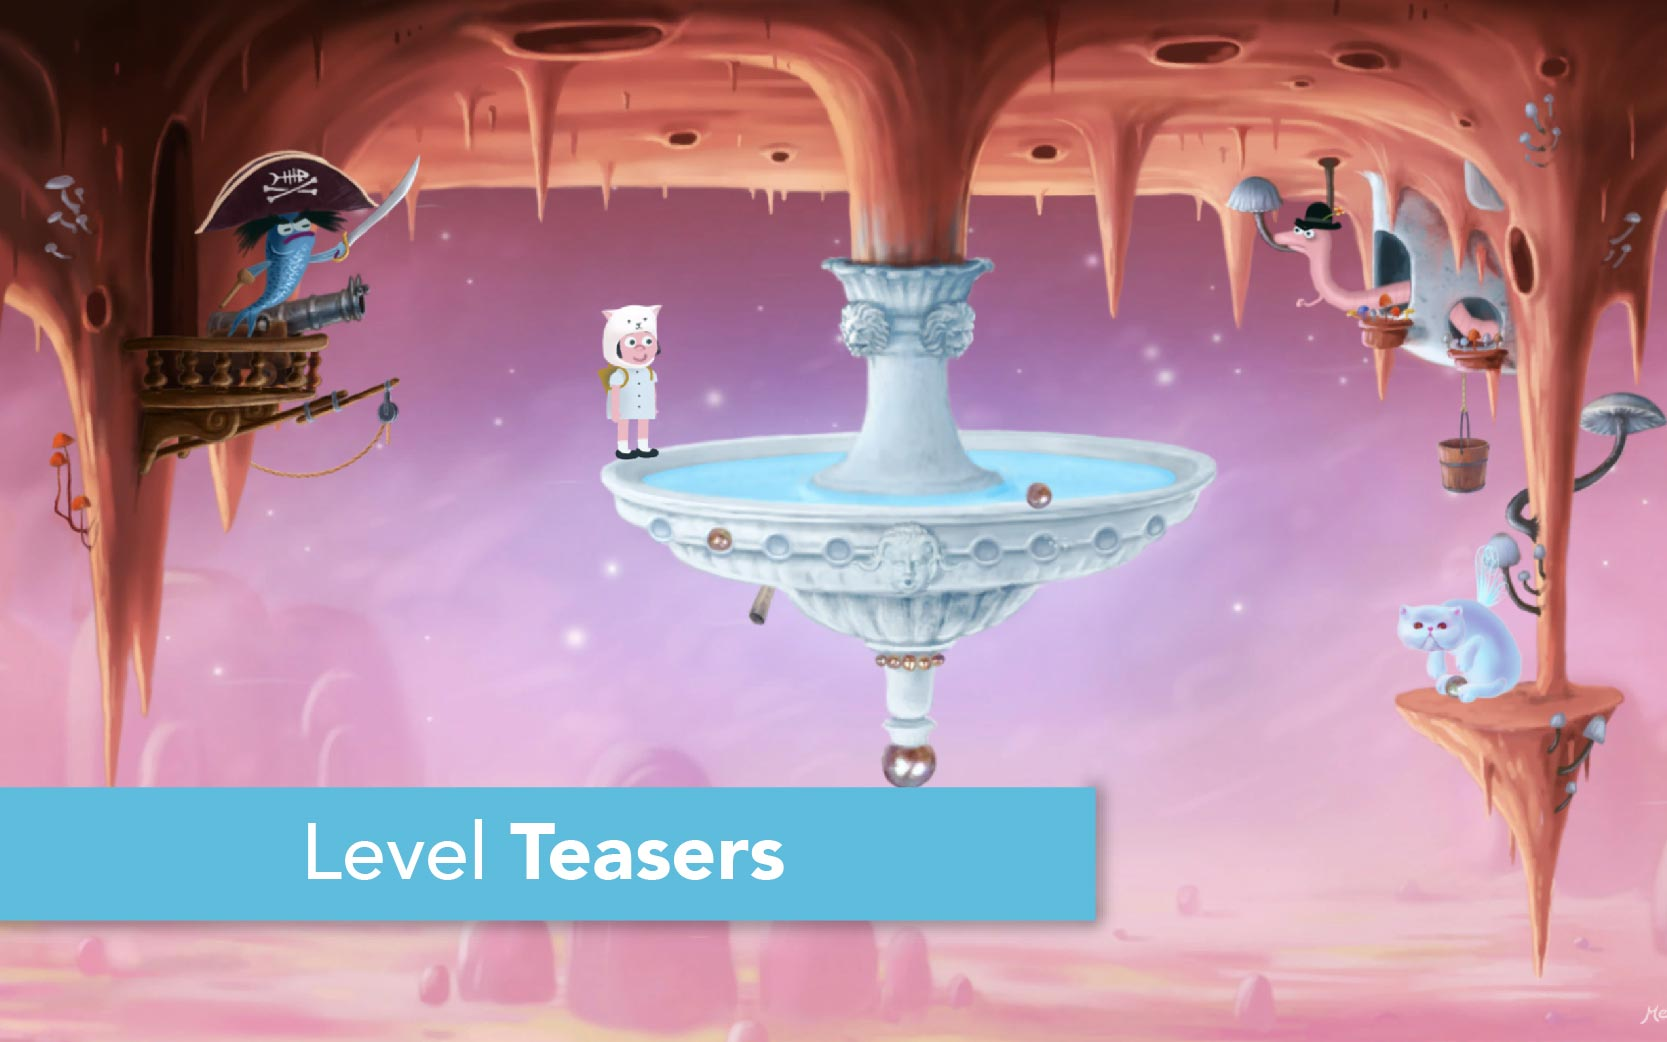 Catie in MeowmeowLand - Level Teasers - Short tease videos of levels